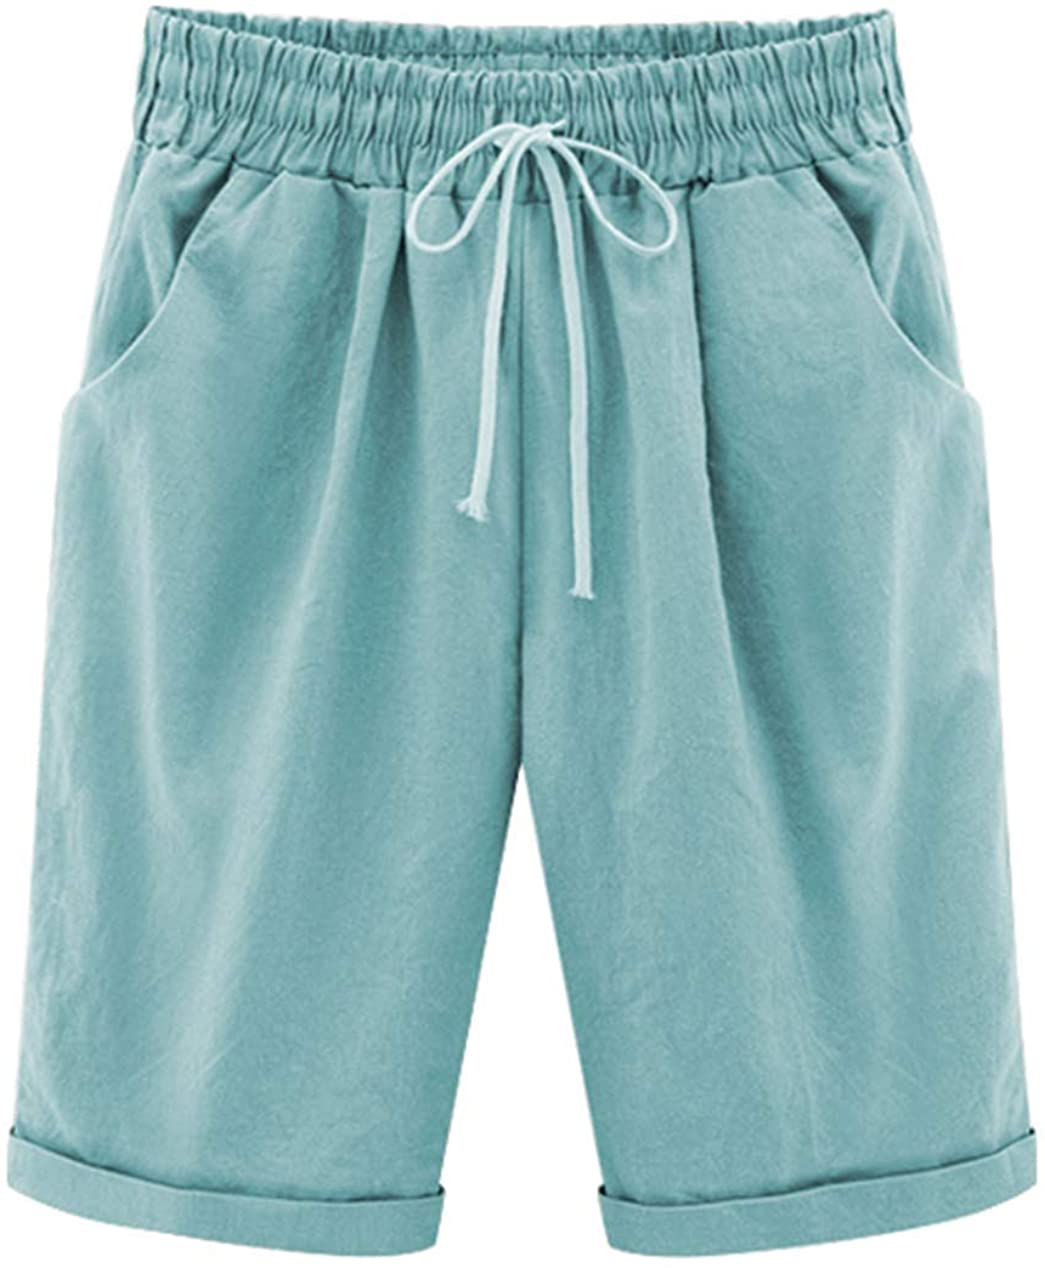 Vcansion Women's Casual Cotton Elastic Waist Knee Length Bermuda Shorts with Drawstring